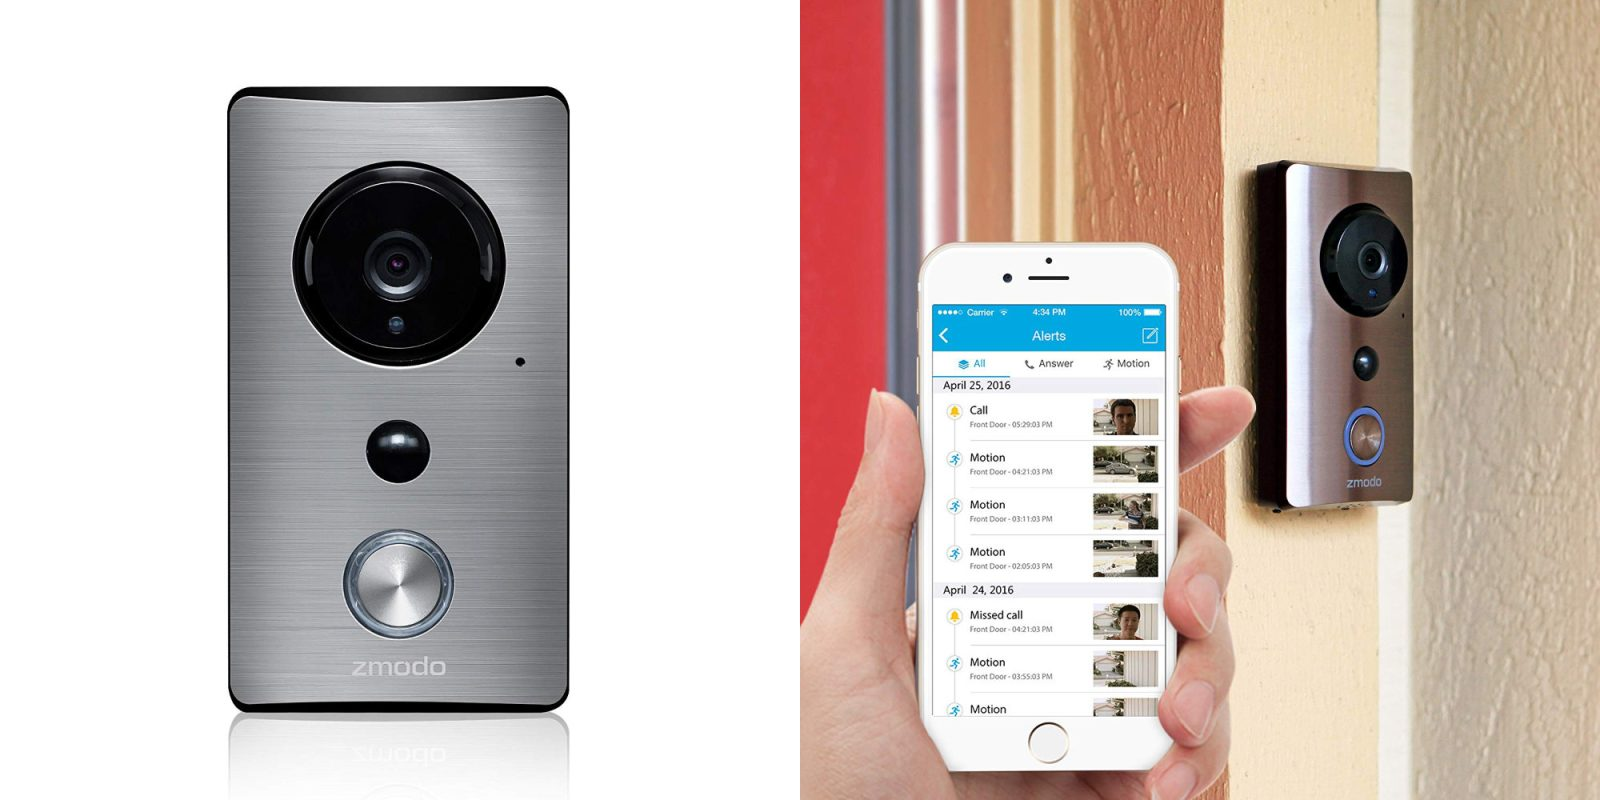 Catch package thieves in the act w/ a sleek Zmodo Video